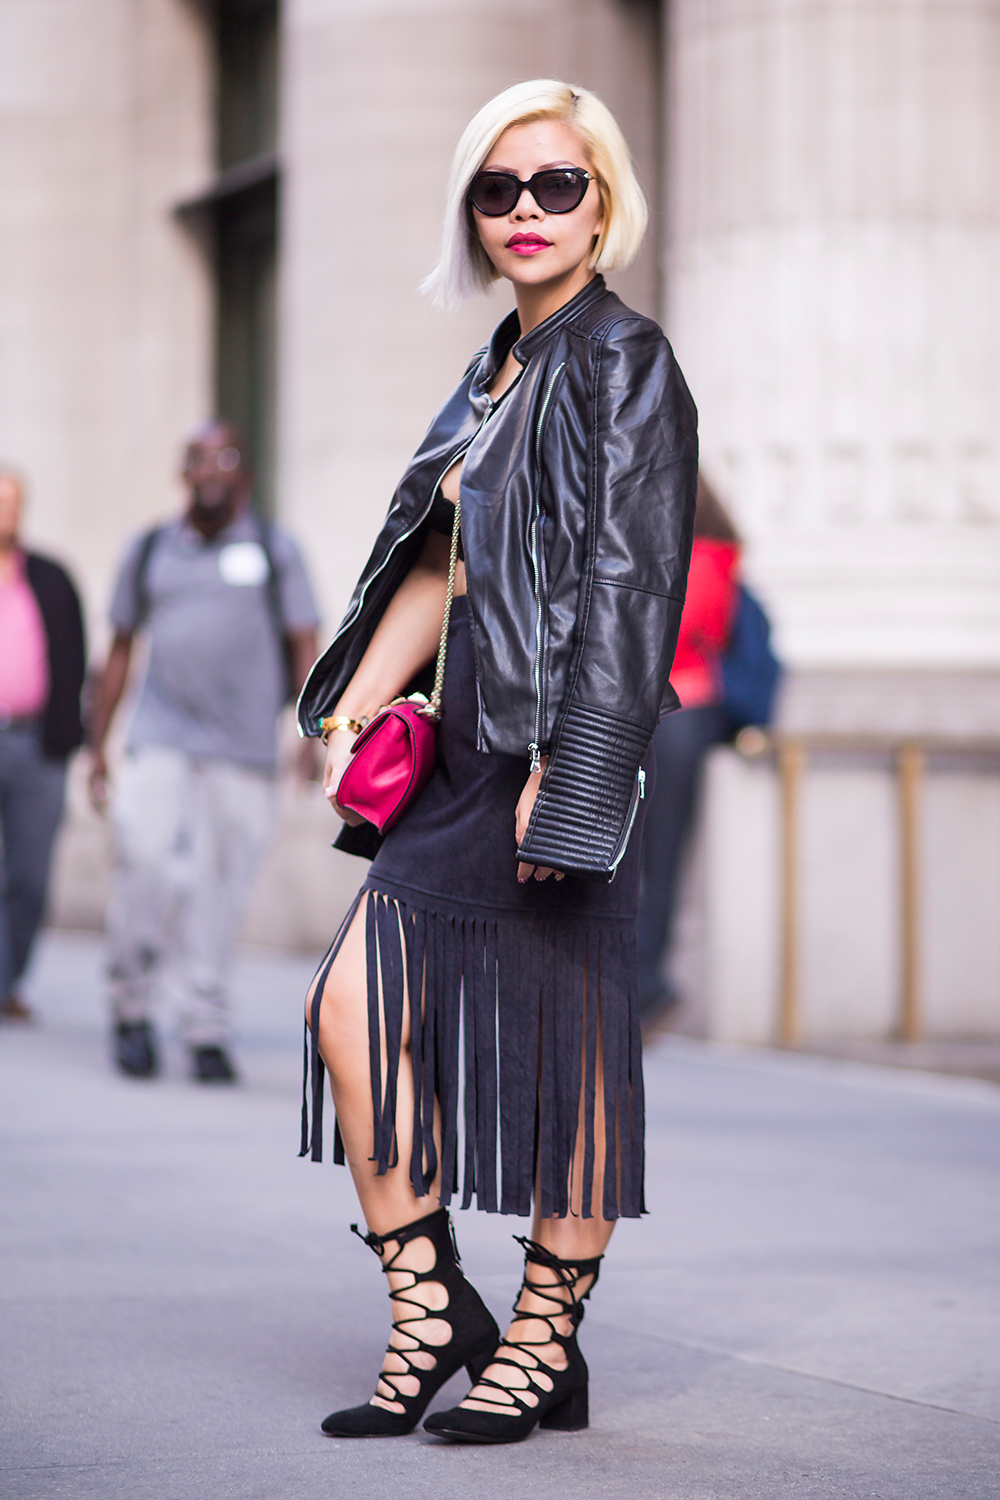 Crystal Phuong- New York Fashion Week 2015 street style- Leather, fringe and lace